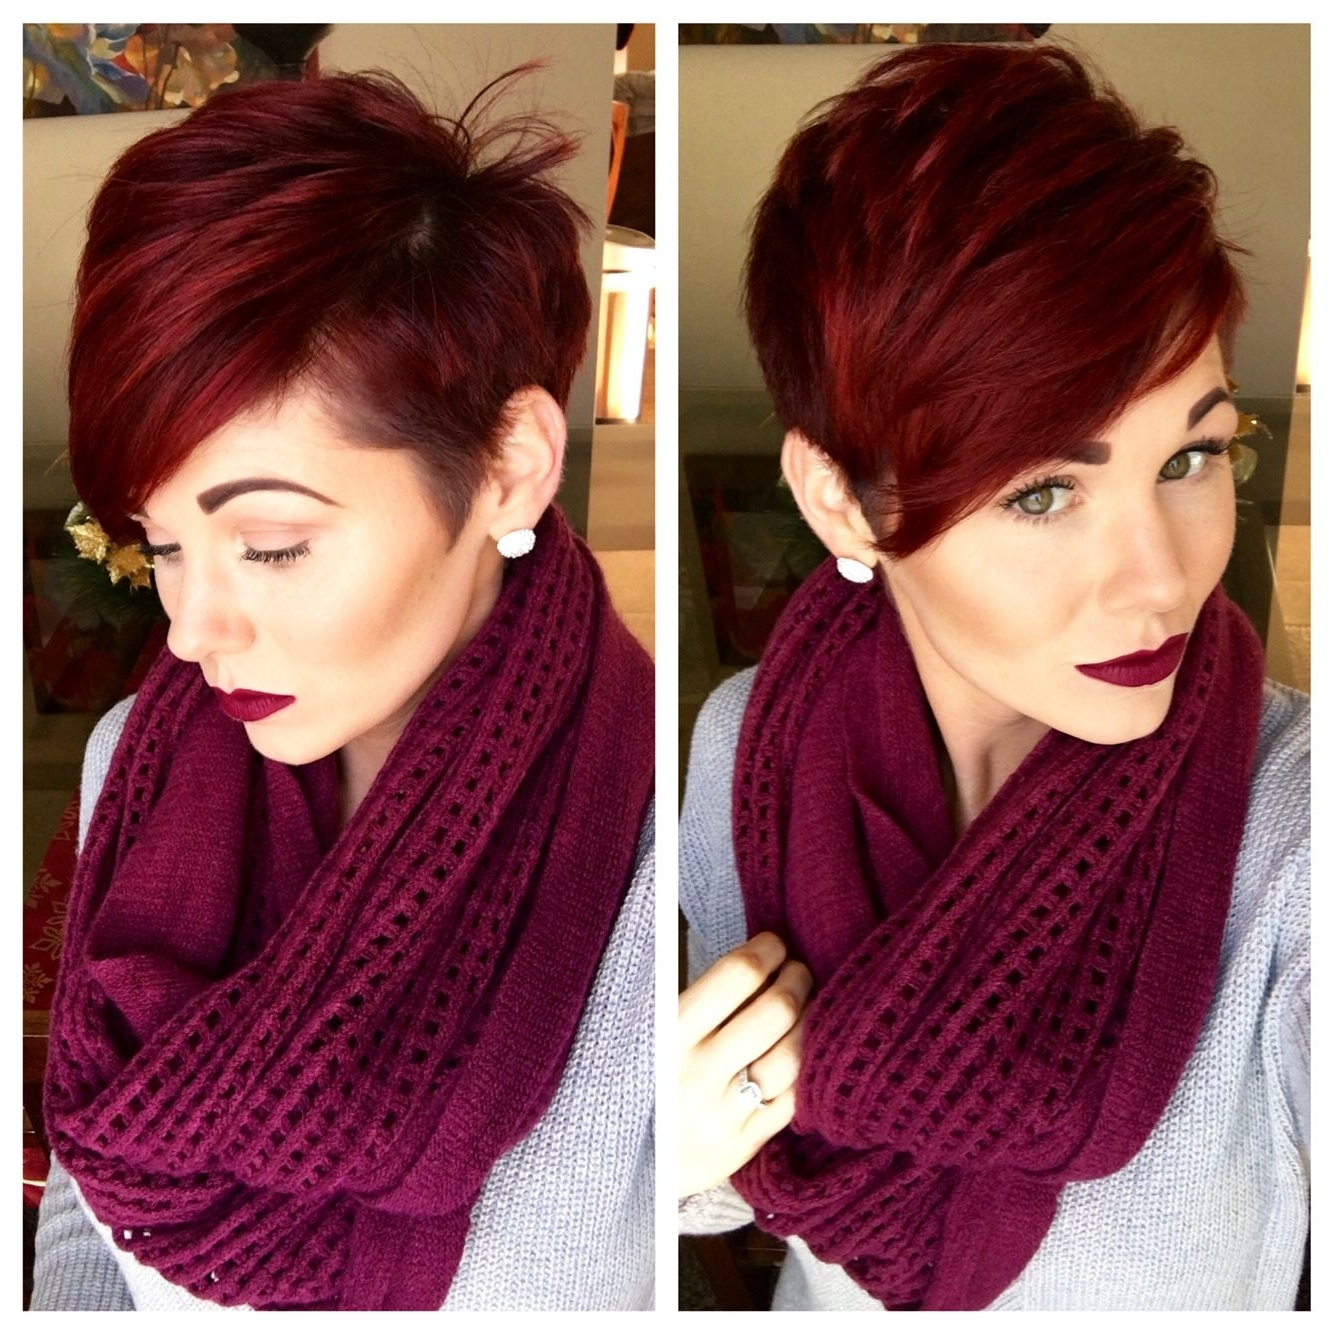 Pixie Cut And Red Violet Hair | Hairstyles/inspiration | Pinterest Regarding Newest Long Red Pixie Haircuts (View 6 of 15)